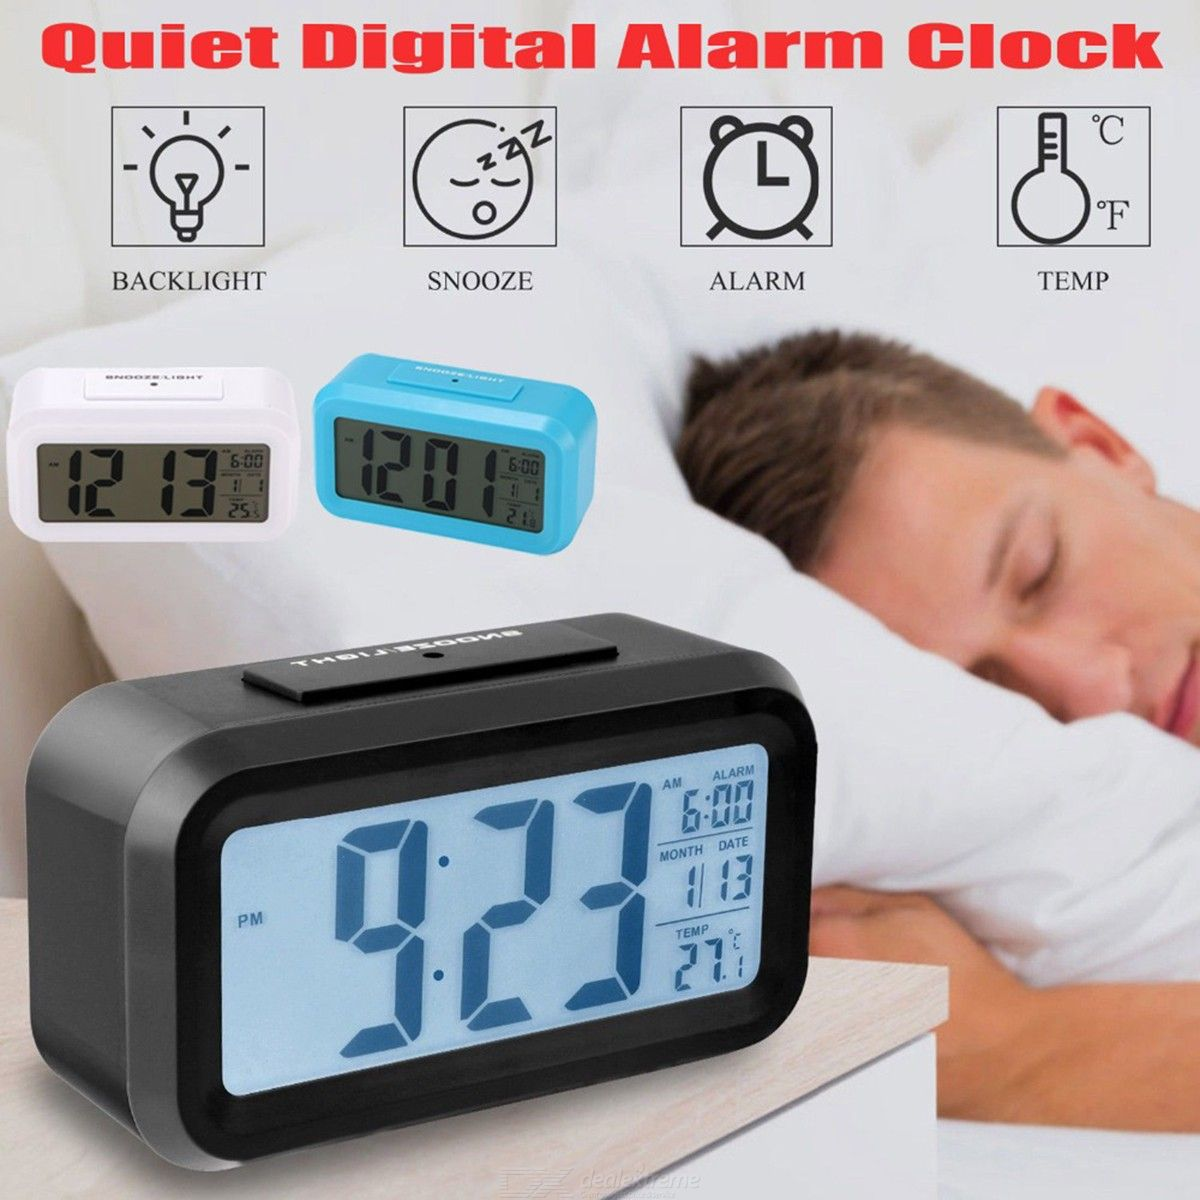 Dealextreme / Digital Alarm Clock Modern LCD Clock With Back Light Snooze Function